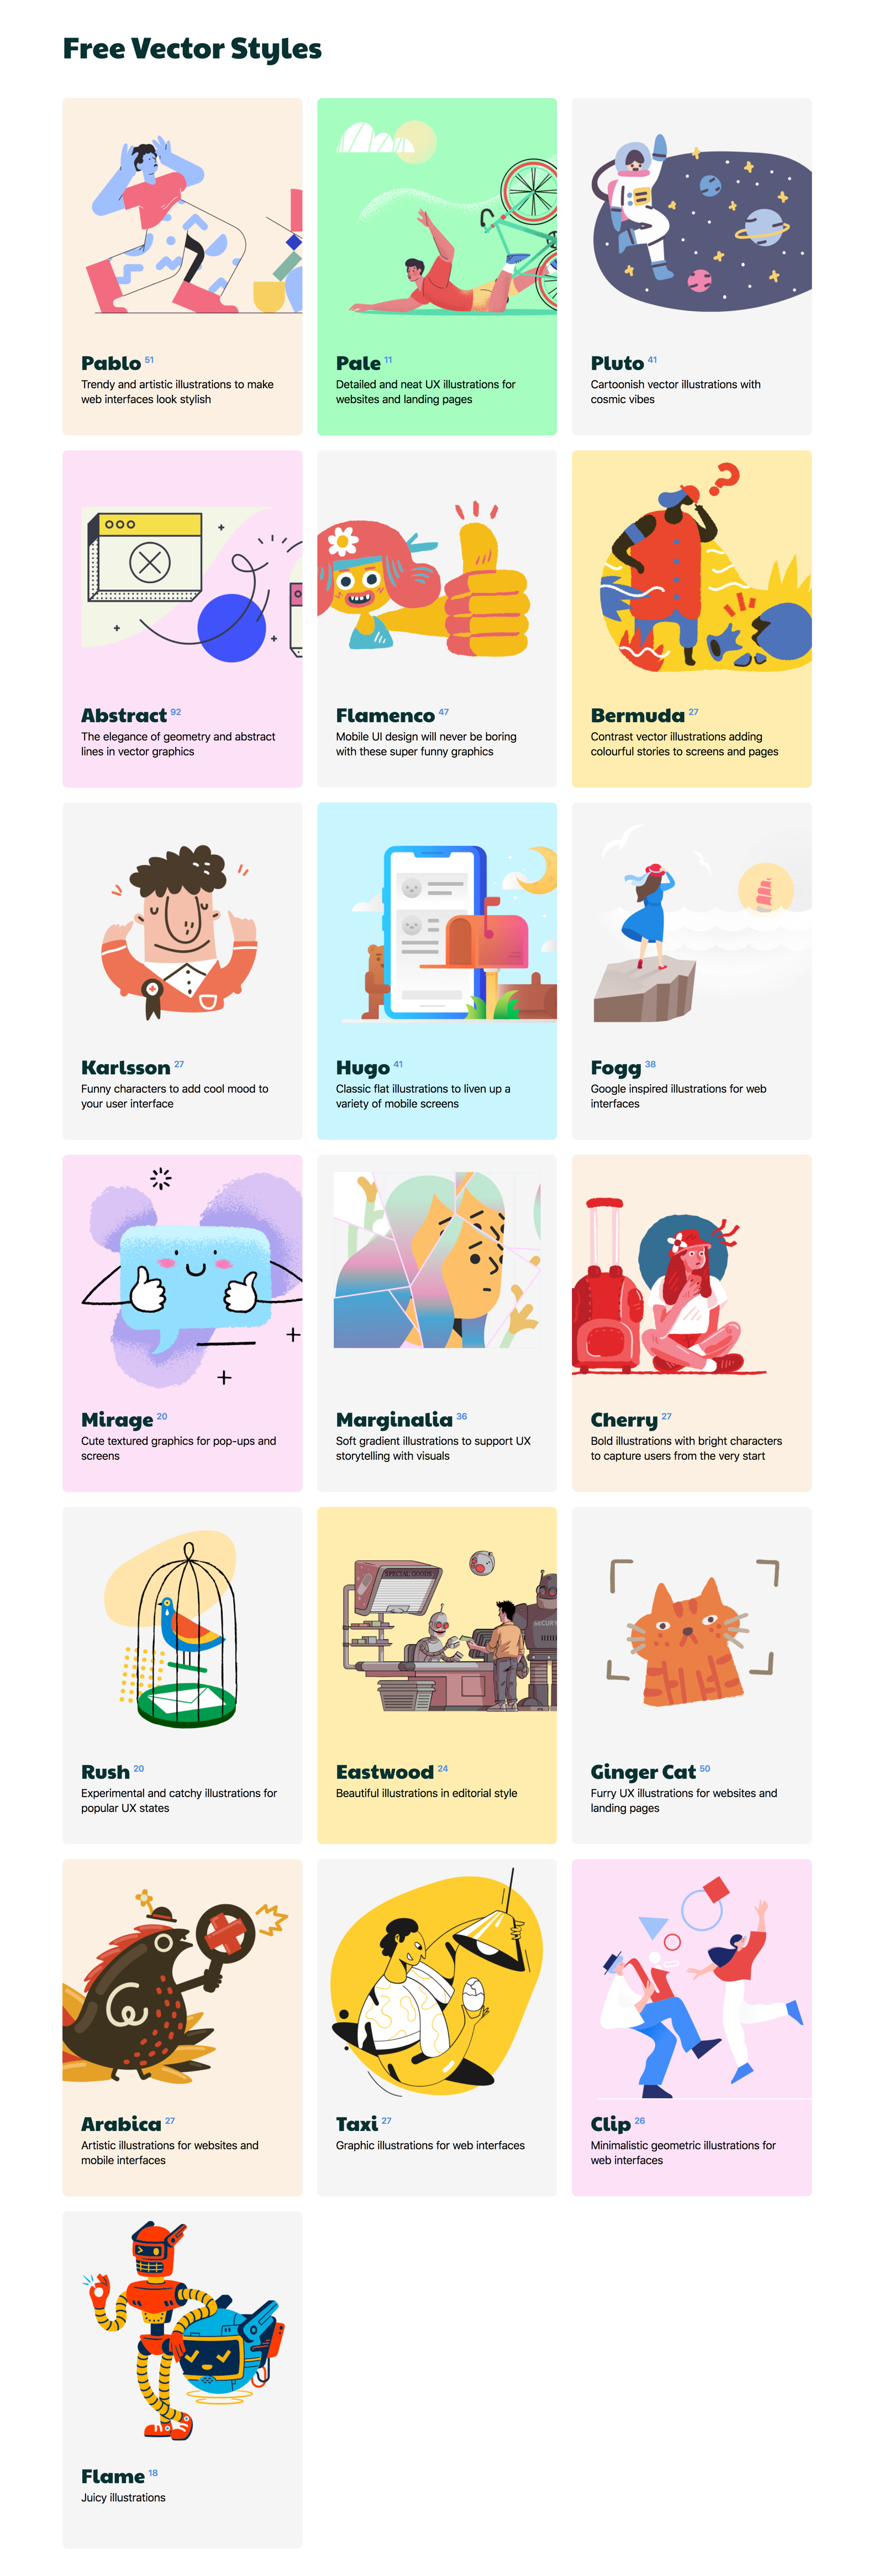 Ouch! - Free illustrations - Ouch helps creators who don't draw overcome the lack of quality graphics. Download the free illustrations from top Dribbble artists to class up your product.